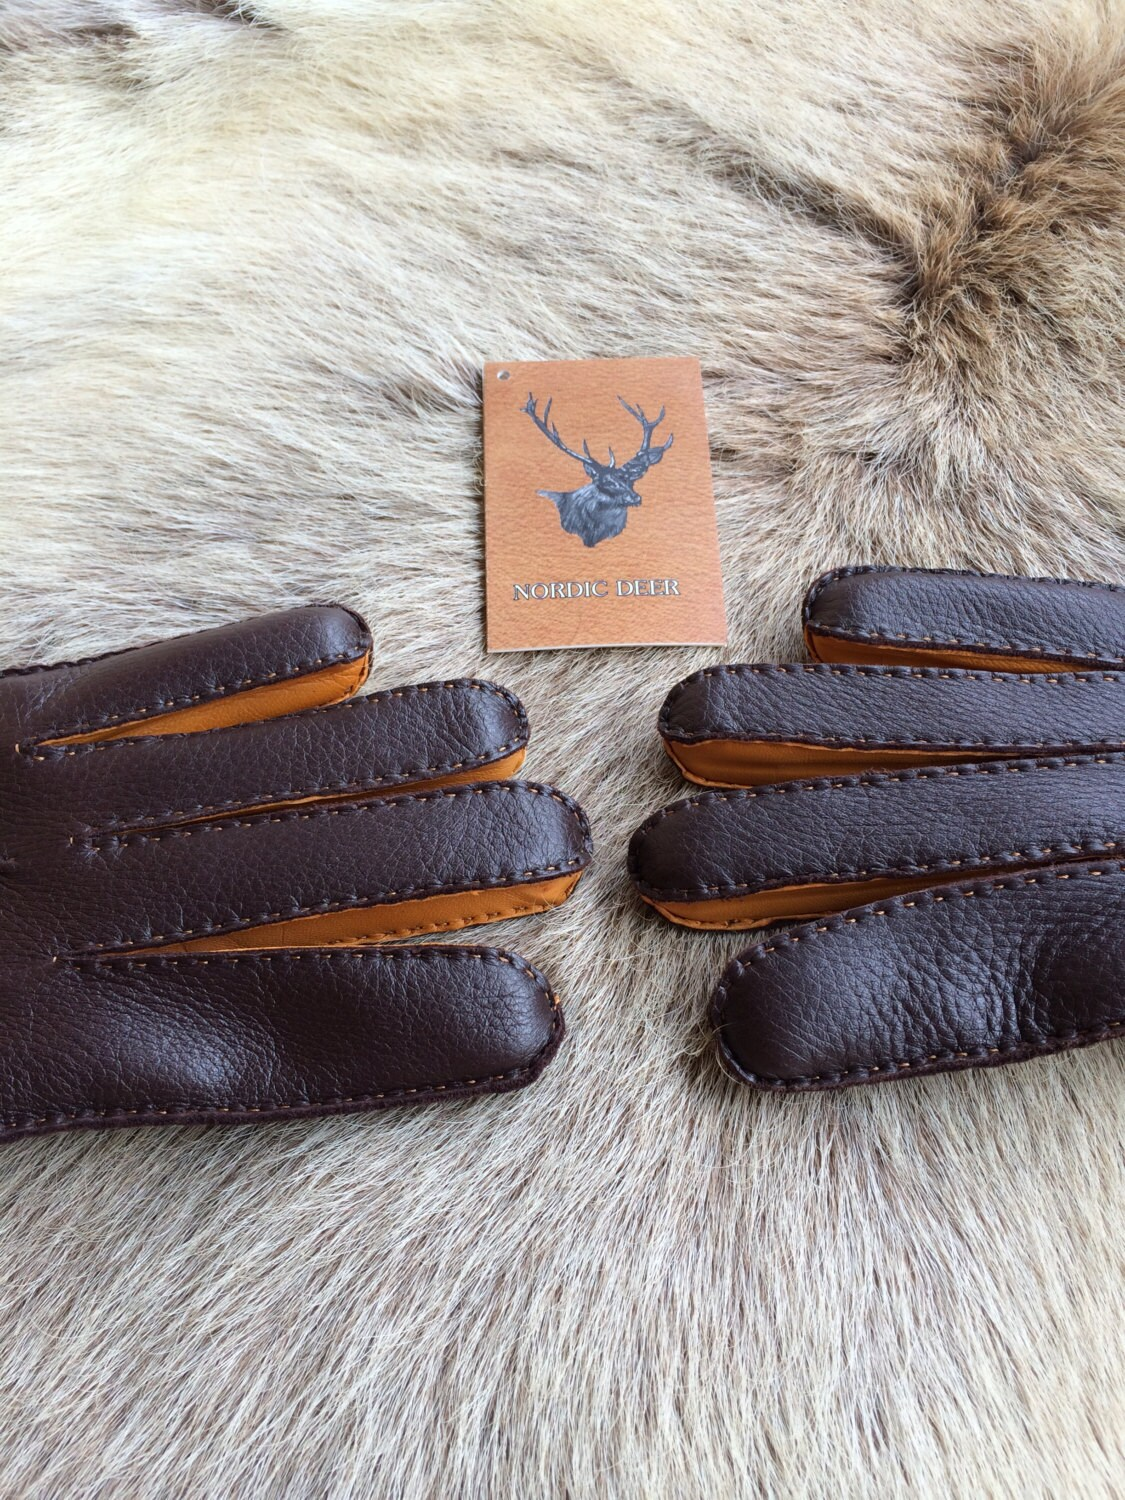 Winter Leather Gloves Handmade Deerskin Vintage Cashmere lining